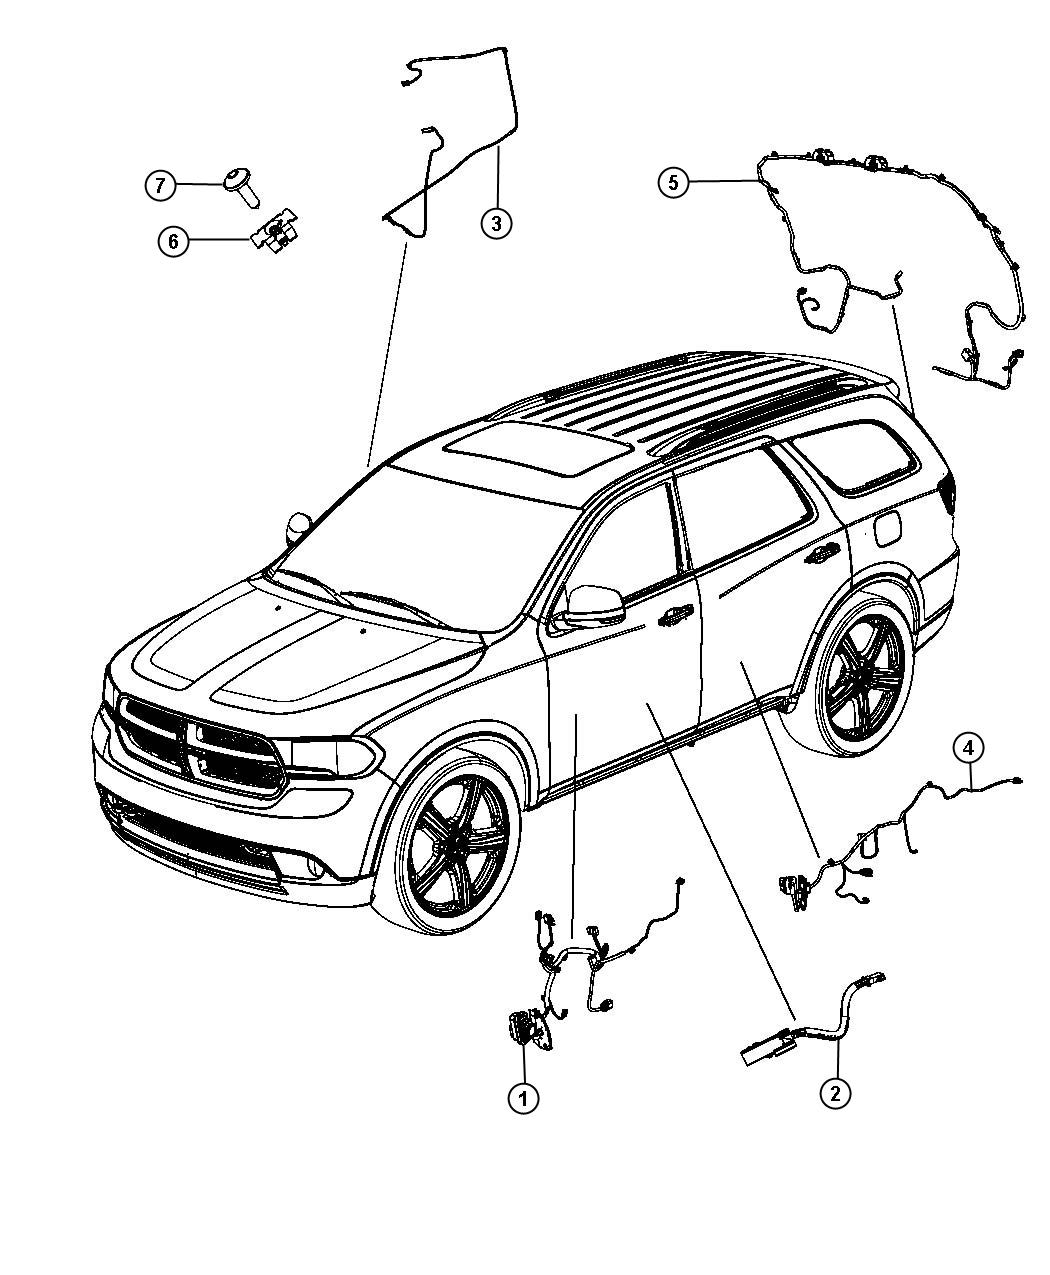 Dodge Durango Wiring Liftgate 3 In 1 Power Liftgate